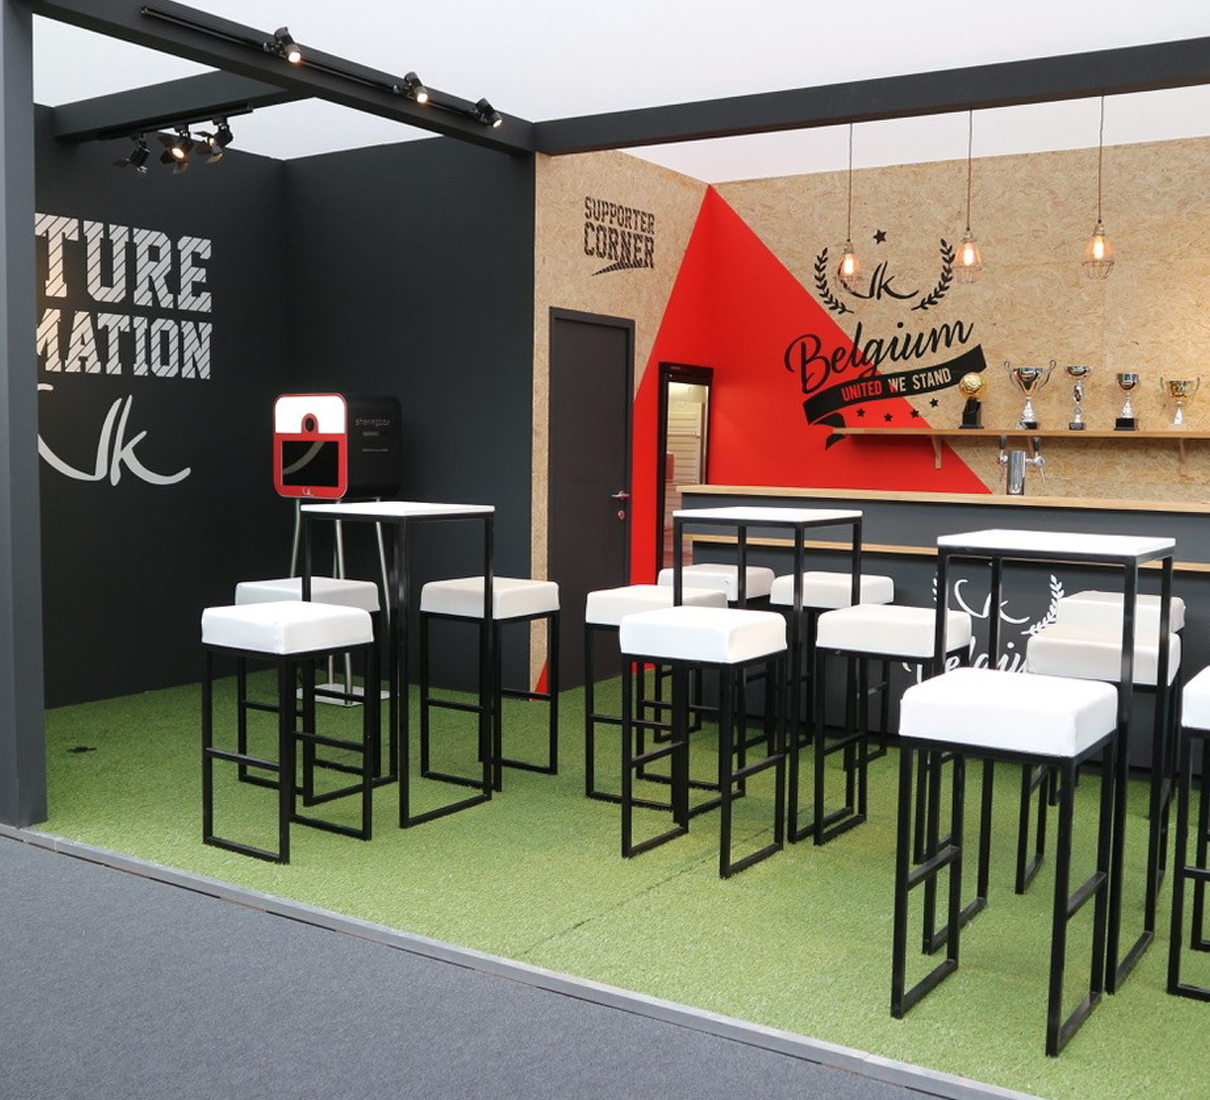 Exhibition Stands | Tzar Agency